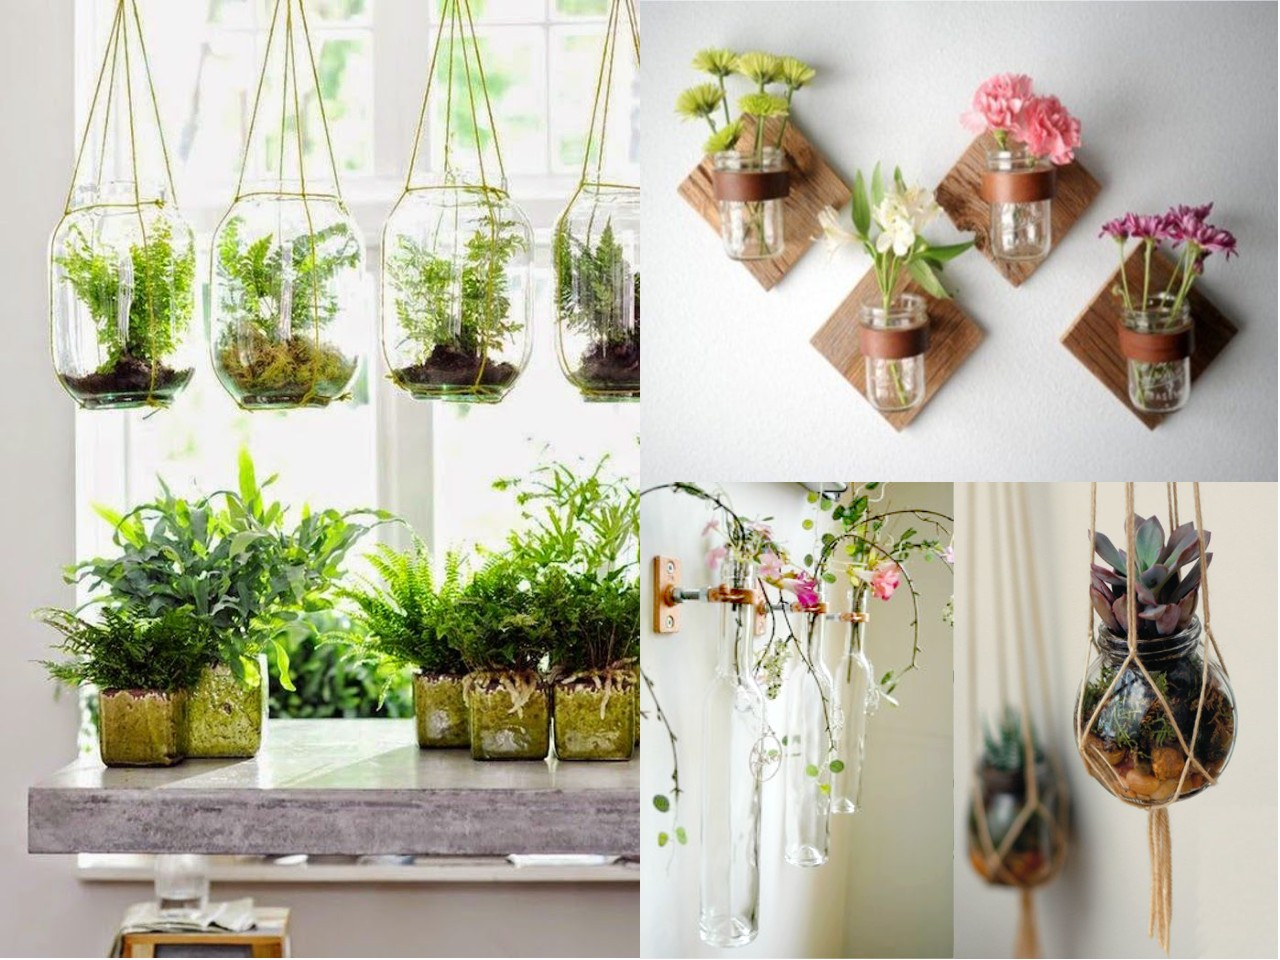 Quieres renovar alguna pared 6 ideas inspiradoras for Casas decoradas con plantas naturales